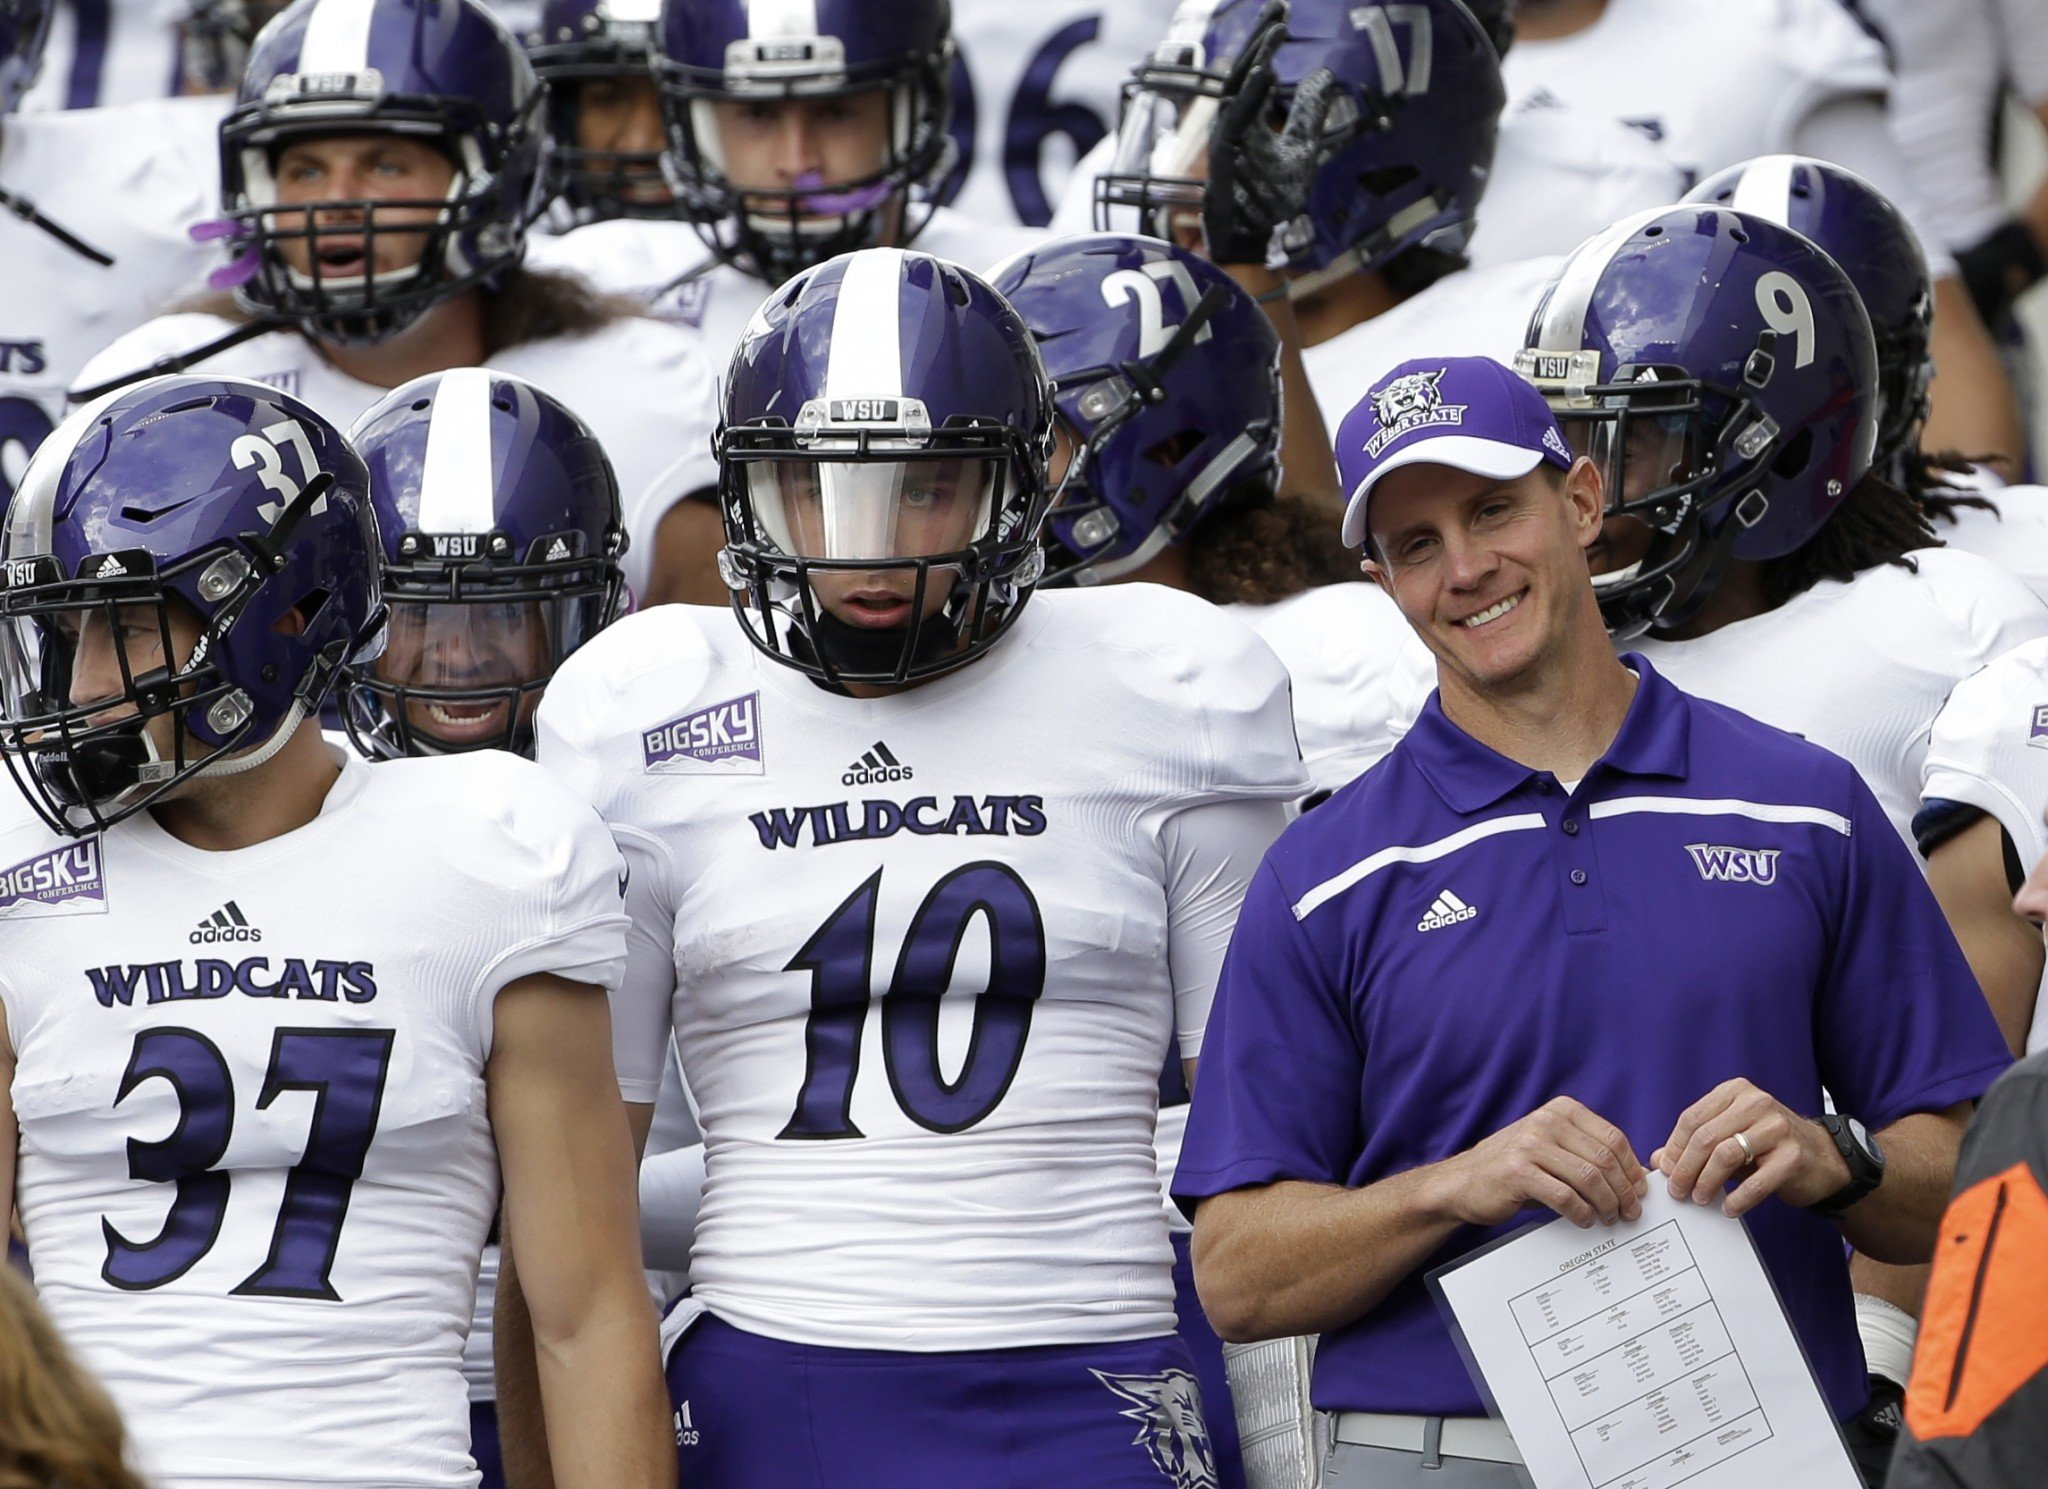 Weber State had football coach Jay Hill is shown with his team before an NCAA college football game against Oregon State in Corvallis, Ore., Friday, Sept. 4, 2015. (AP Photo/Don Ryan)